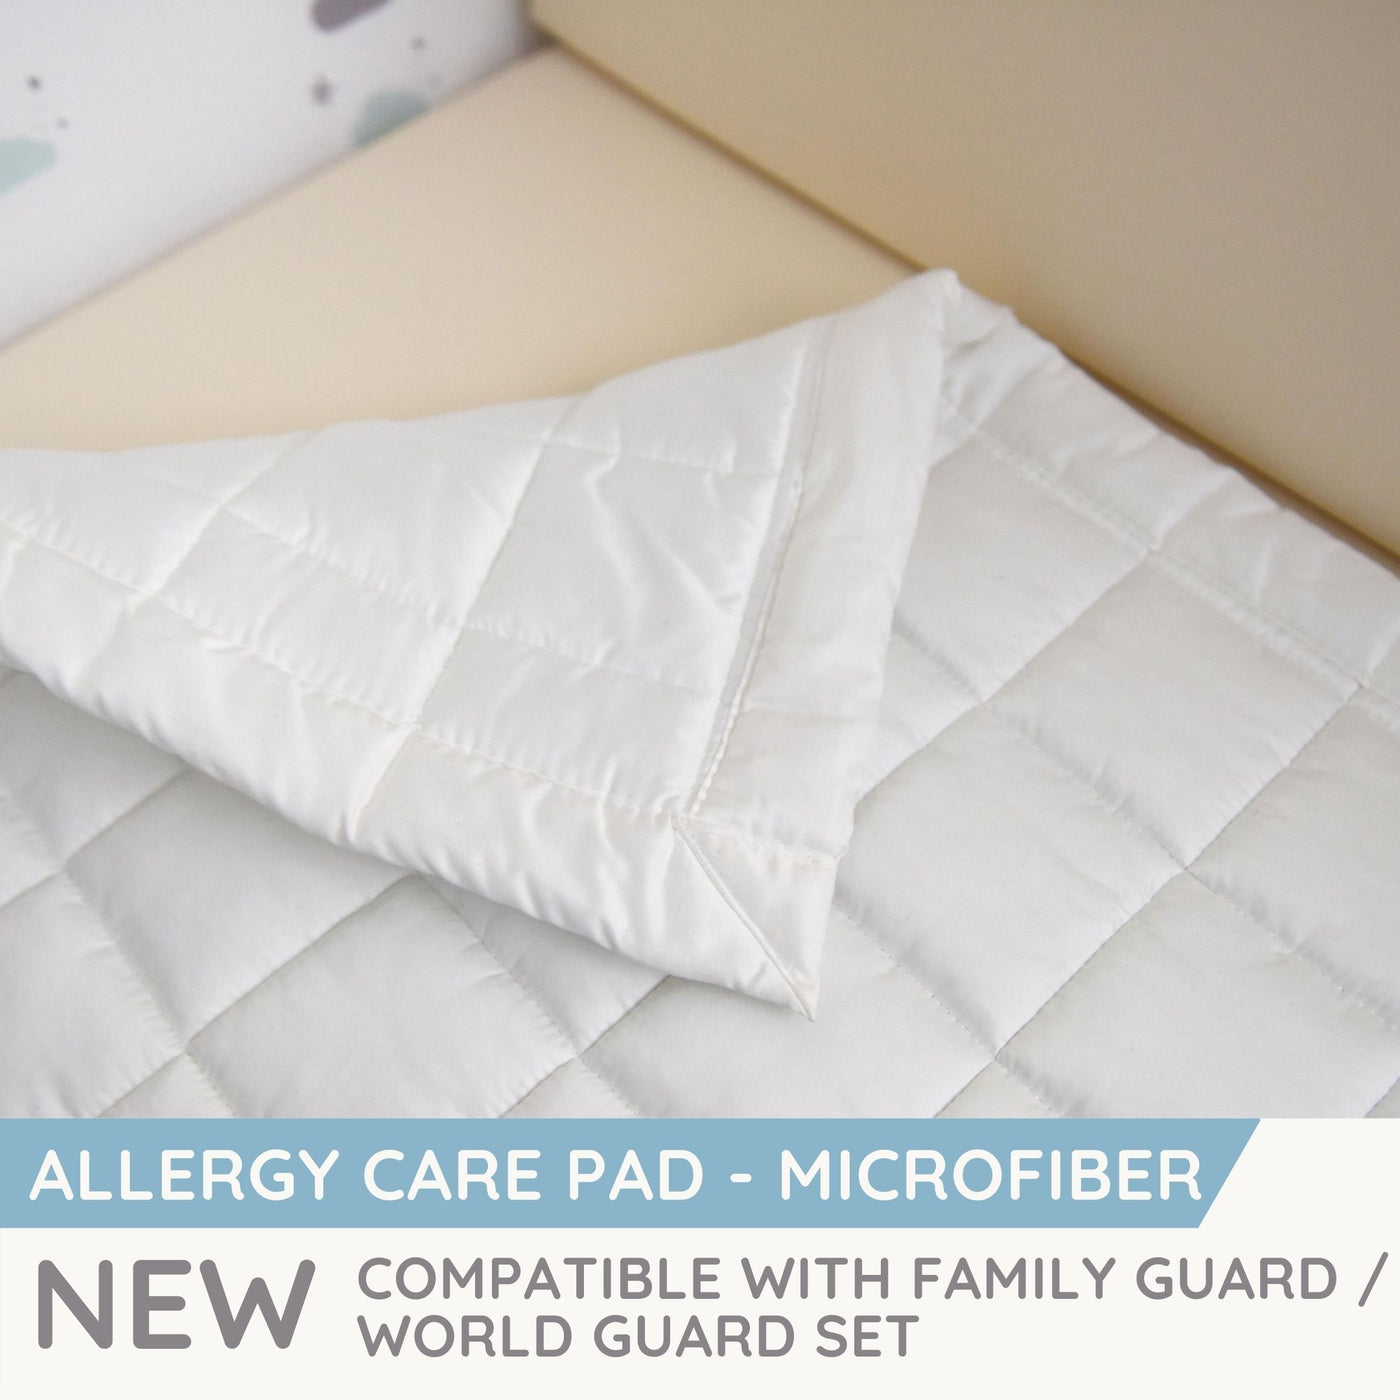 Allergy Care Pad (Microfiber) For Family Guard / World Guard set